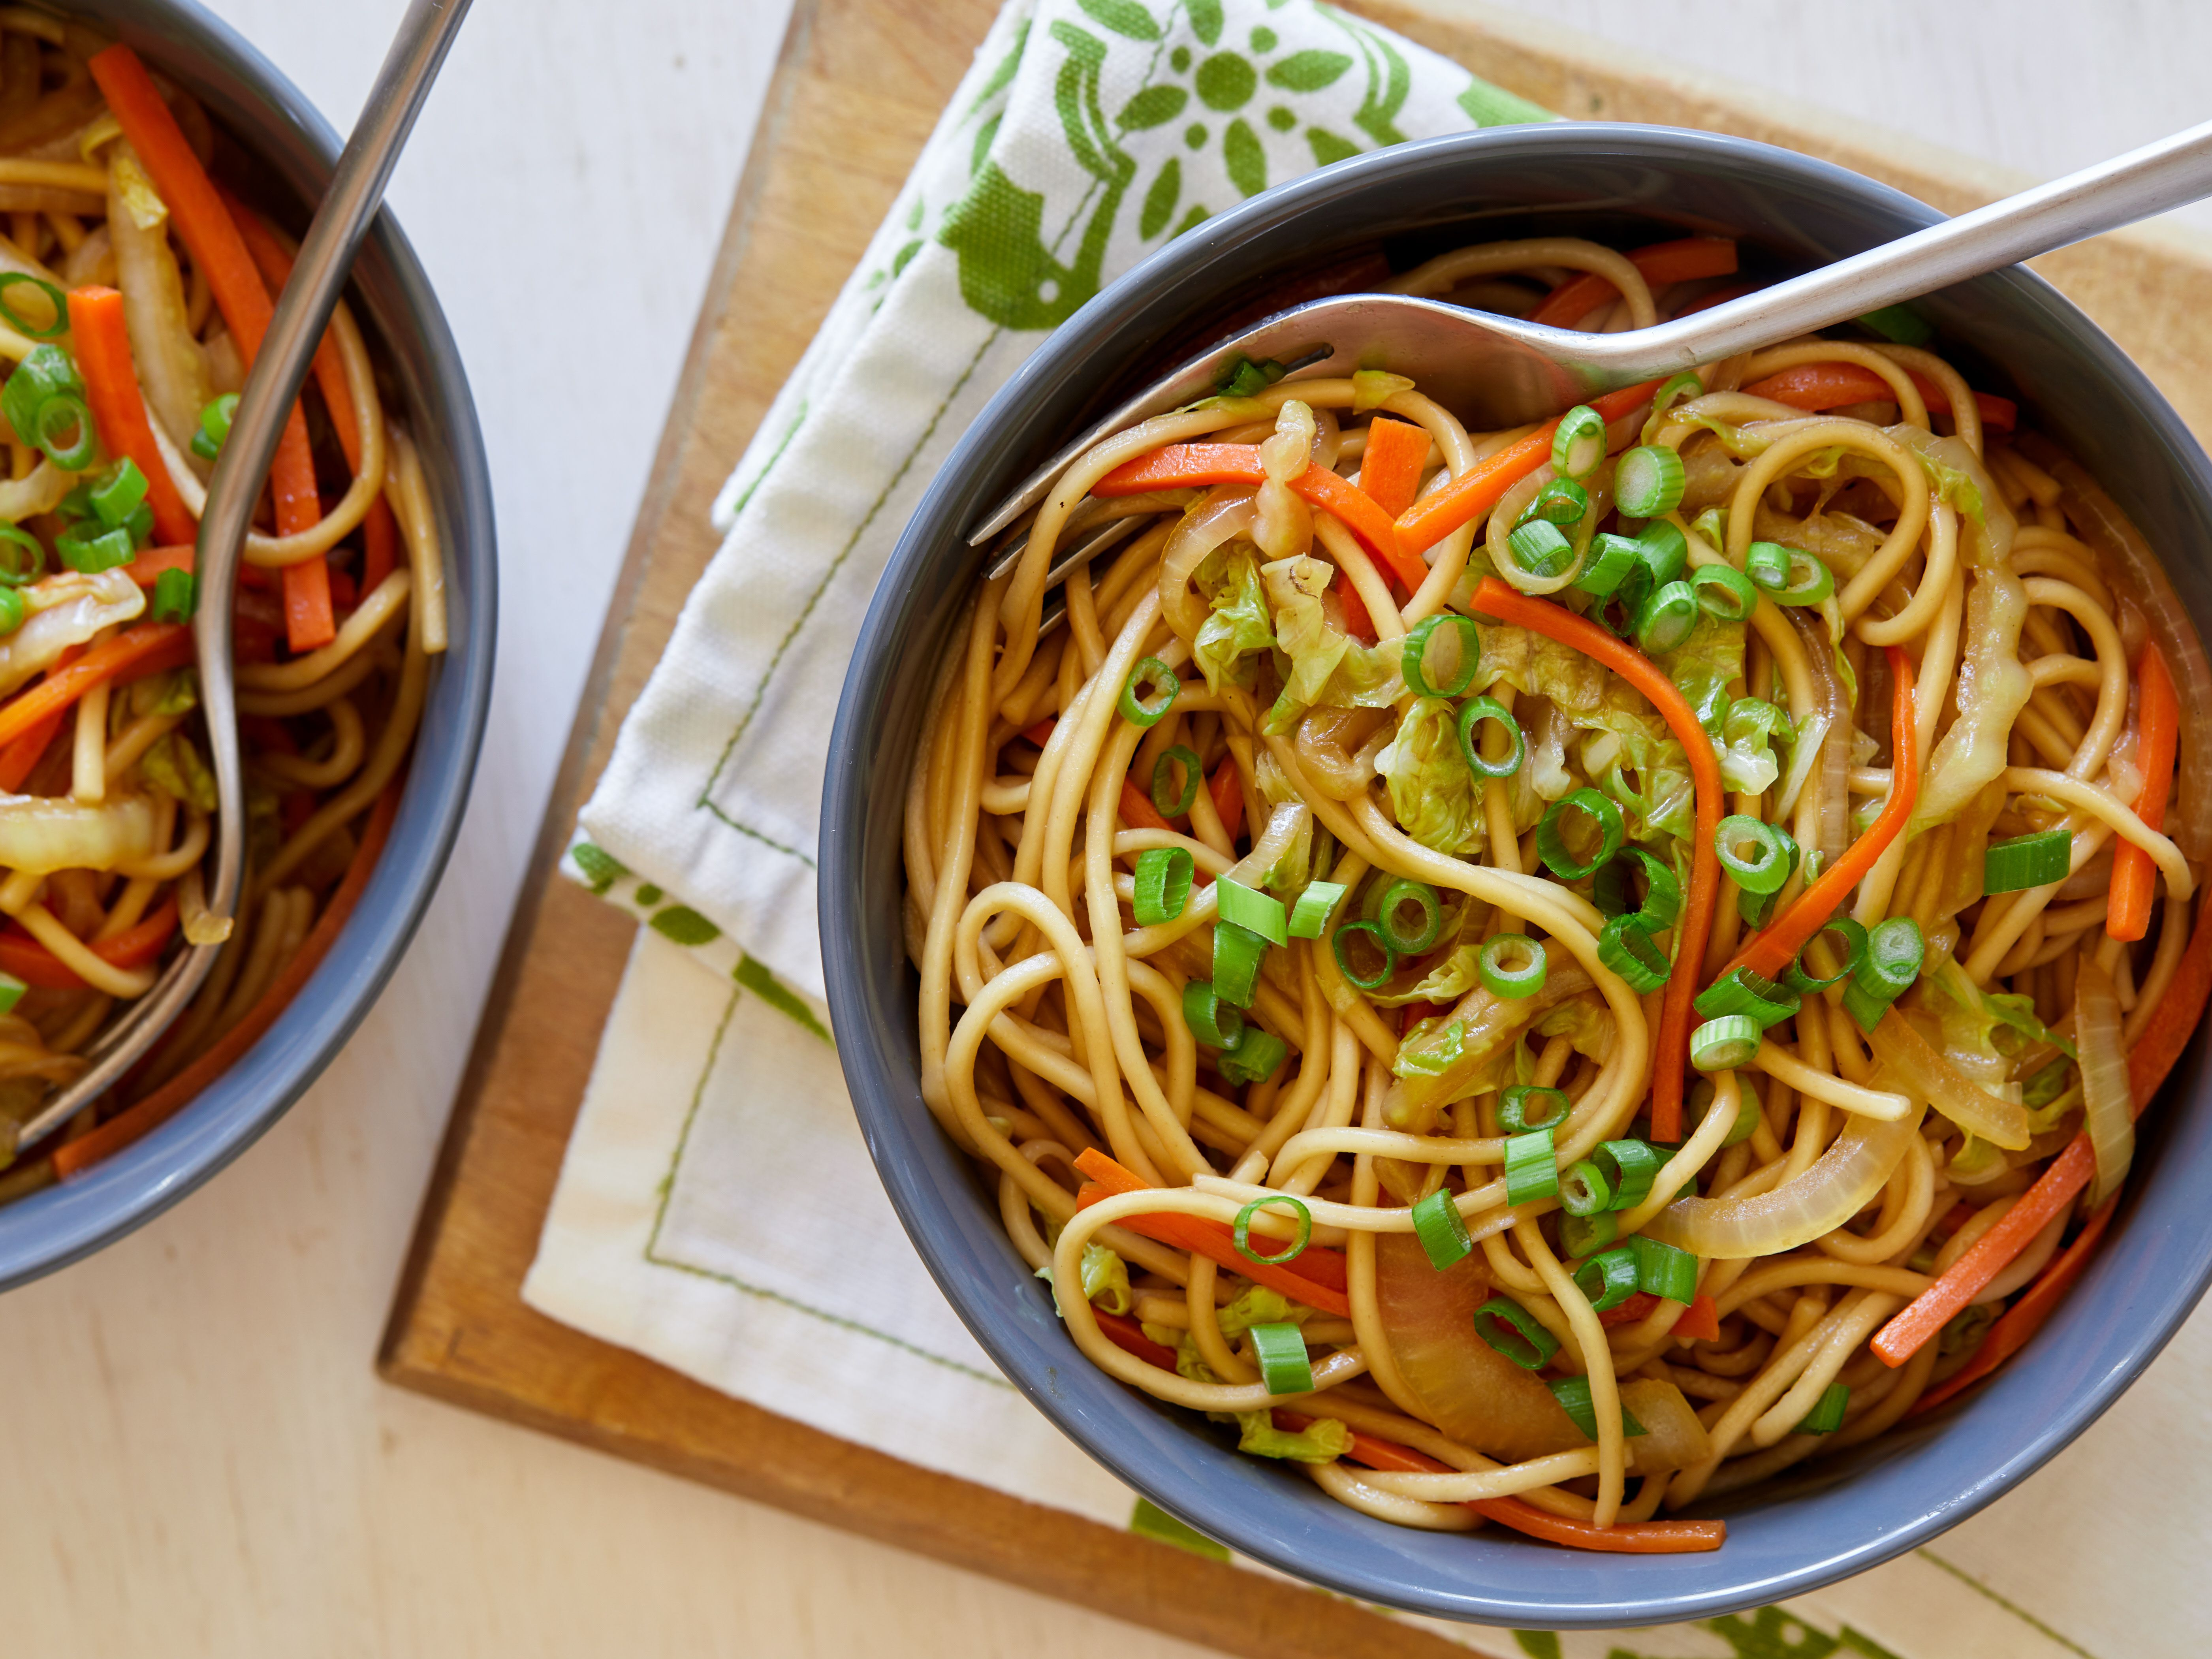 Chow mein recipe in 2020 food network recipes food